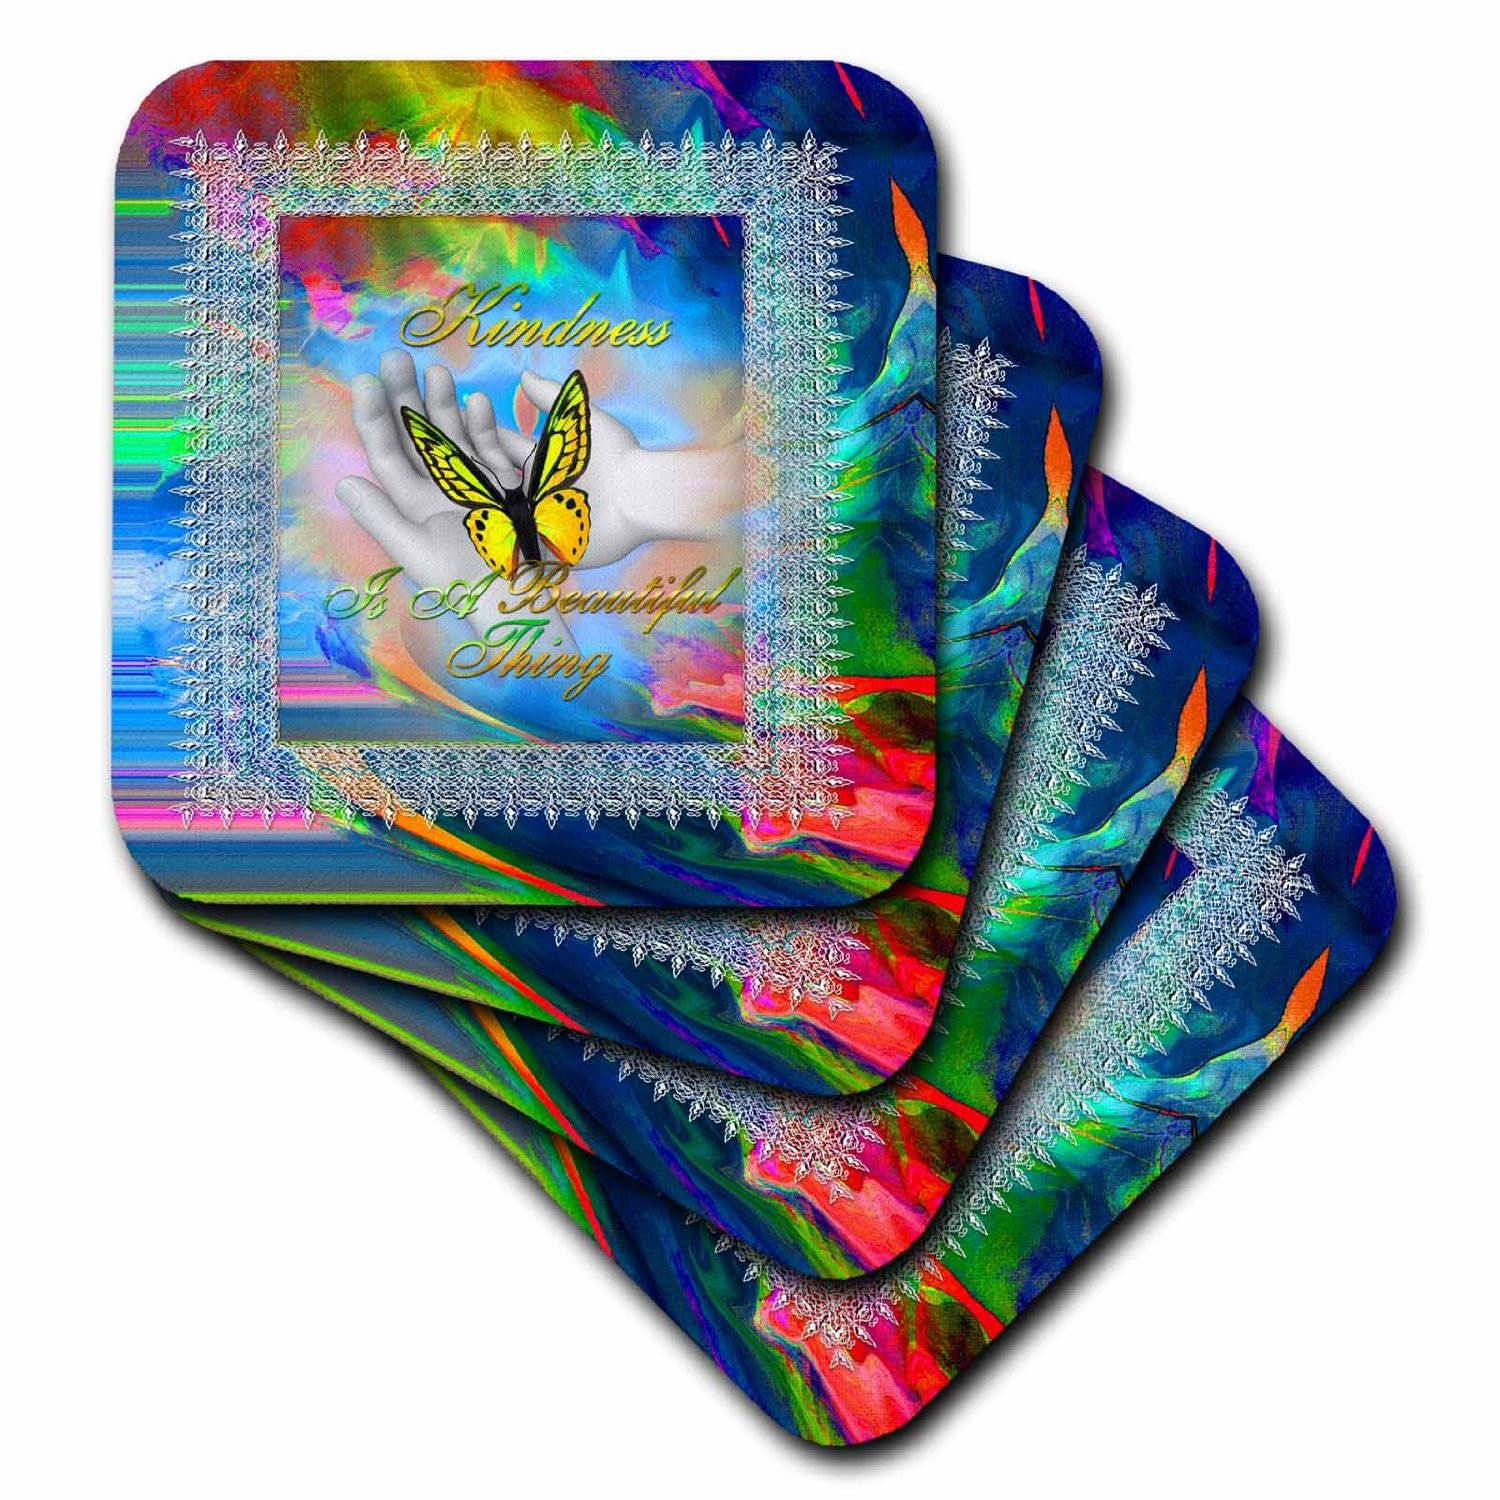 Spiritual Awakenings-Abstracts - Beautiful fractal abstract and Kindness Saying - set of 8 Coasters - Soft (cst_210690_2)